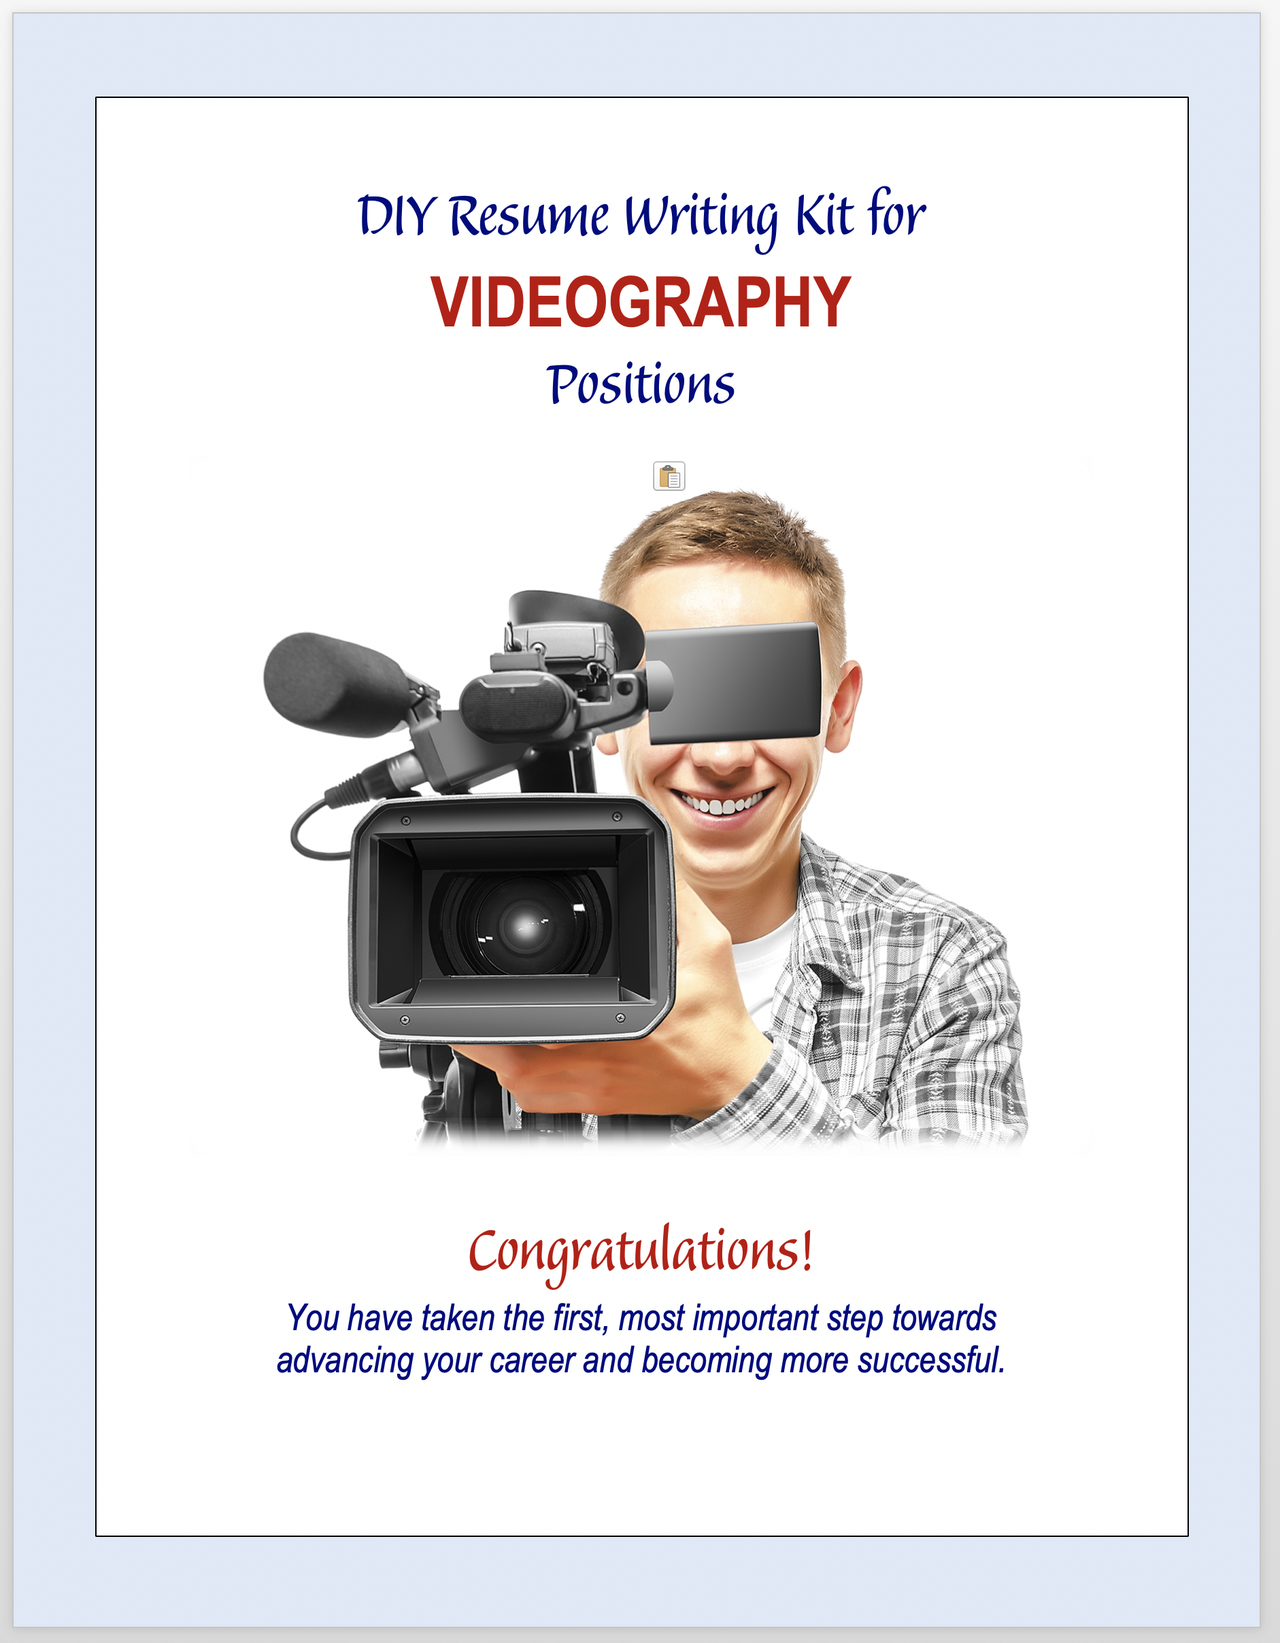 videography.png